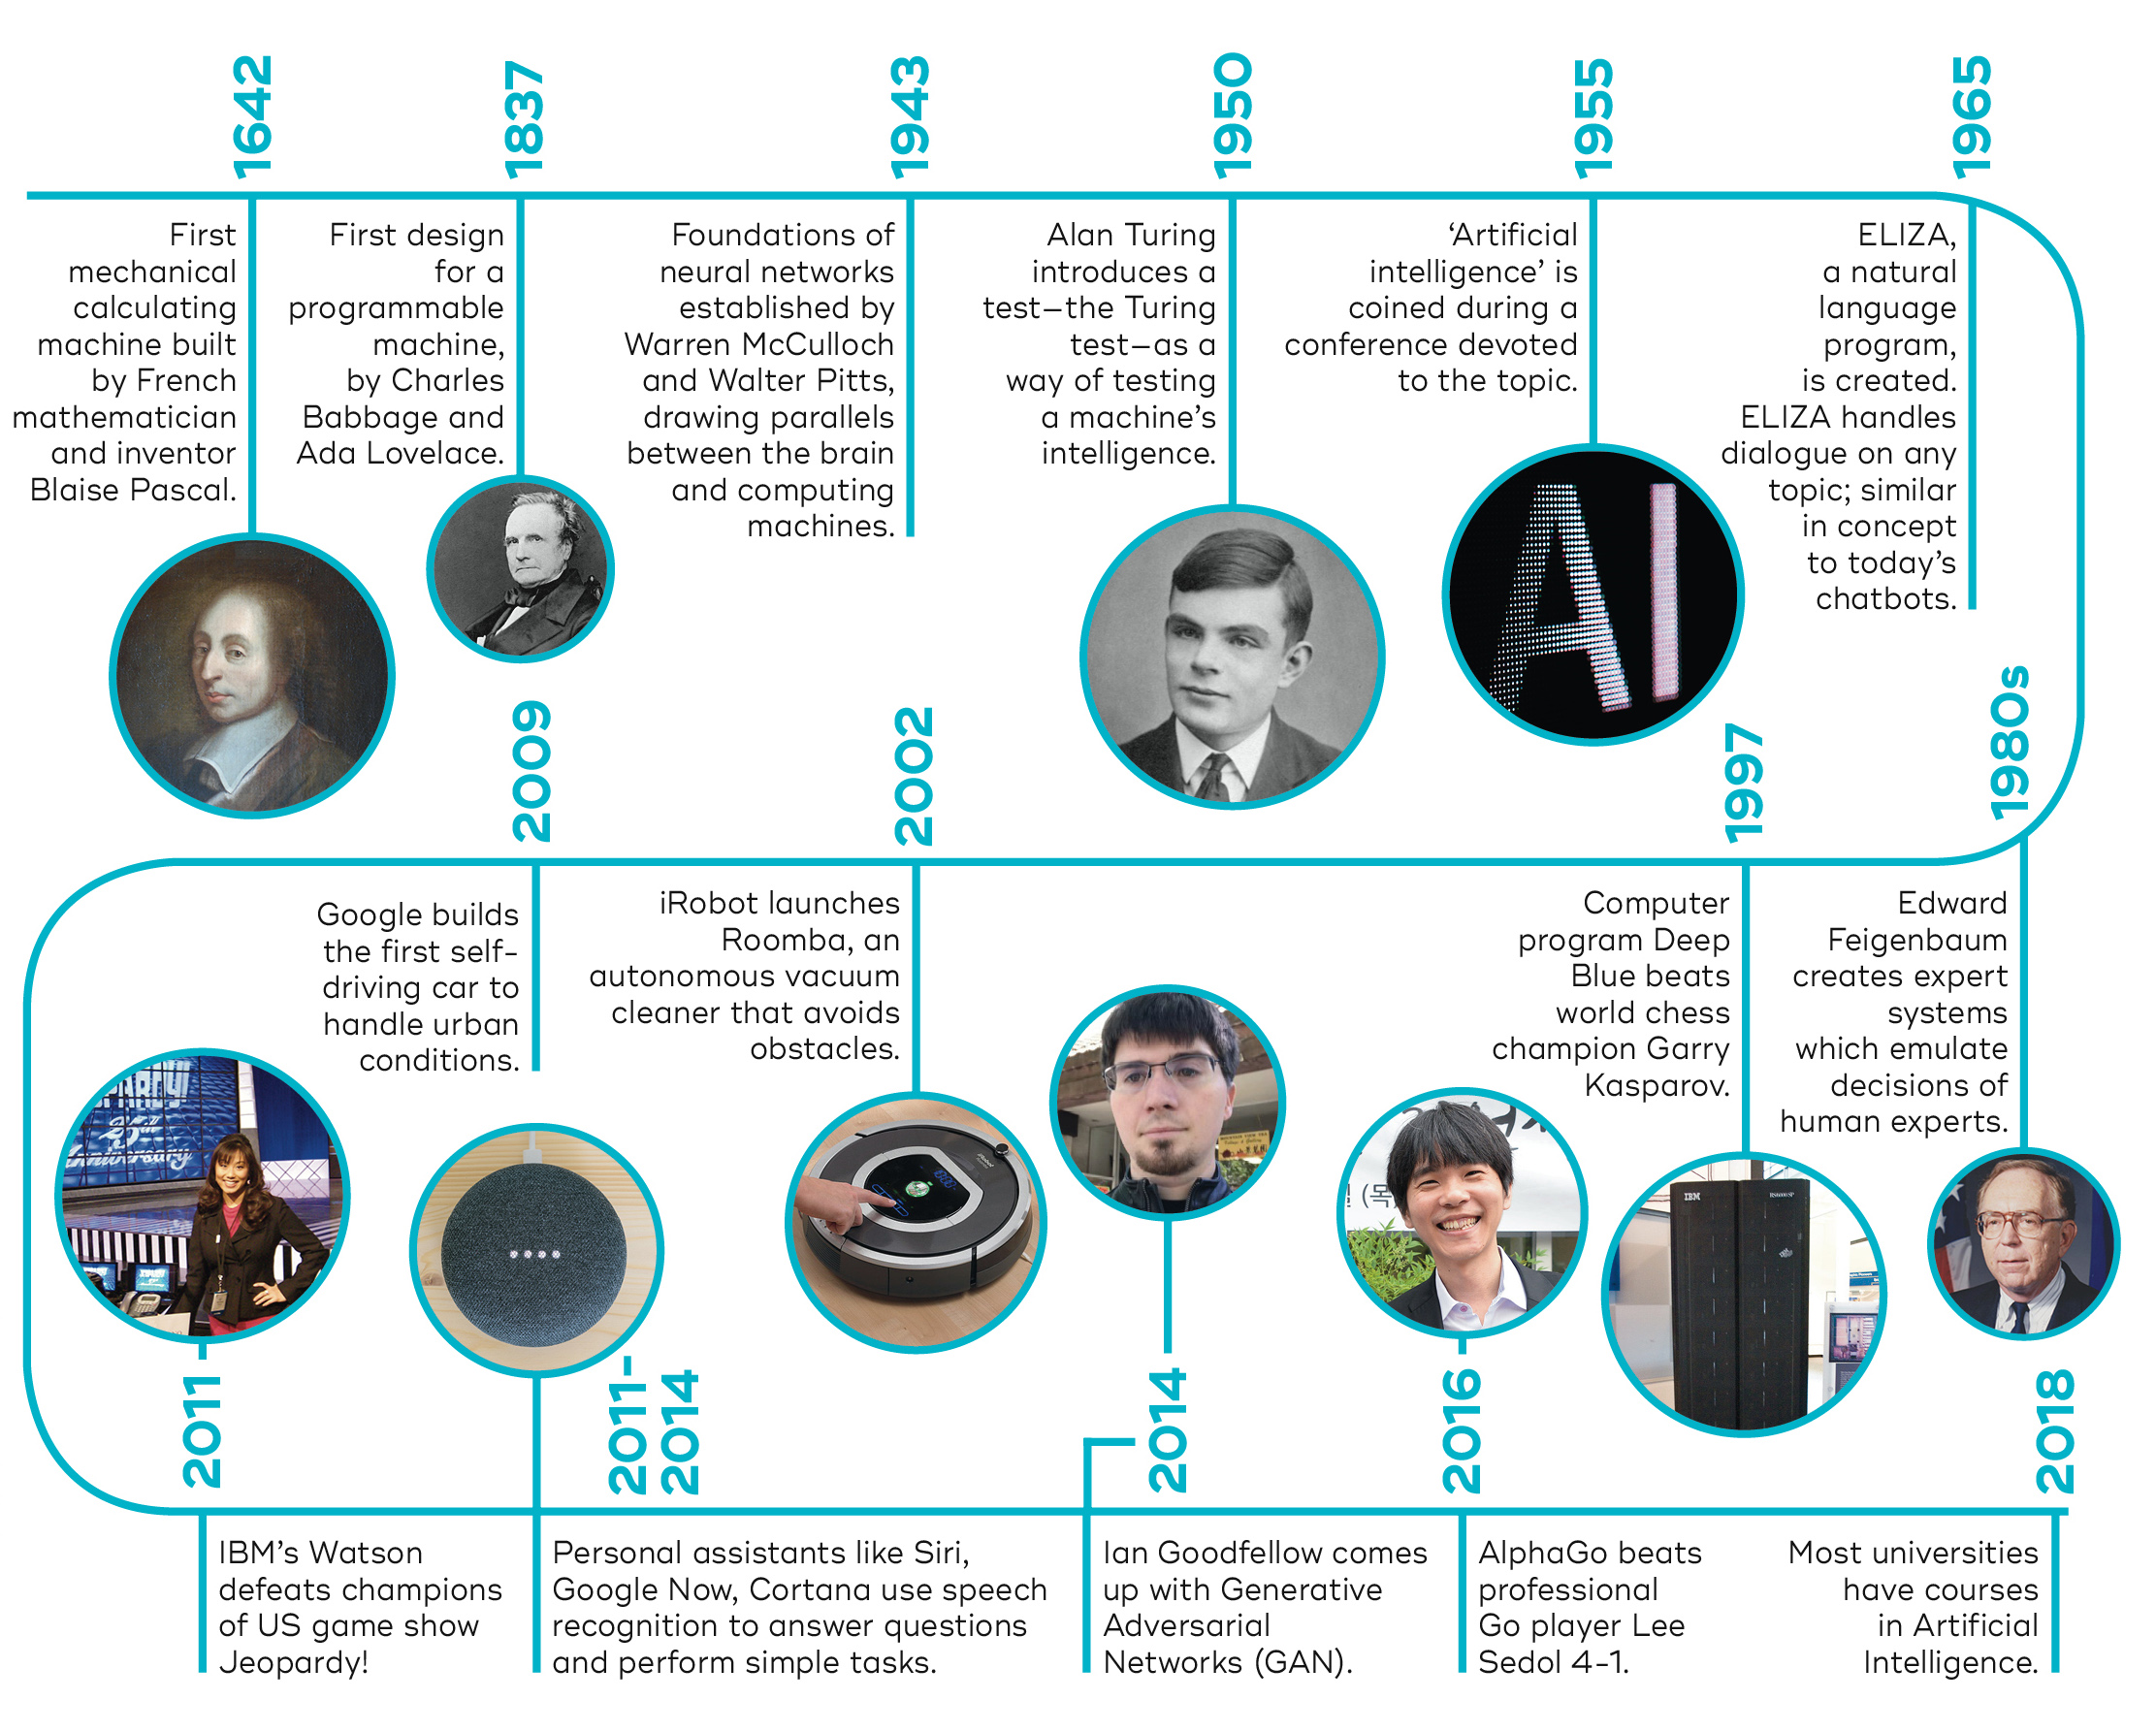 history of AI timeline